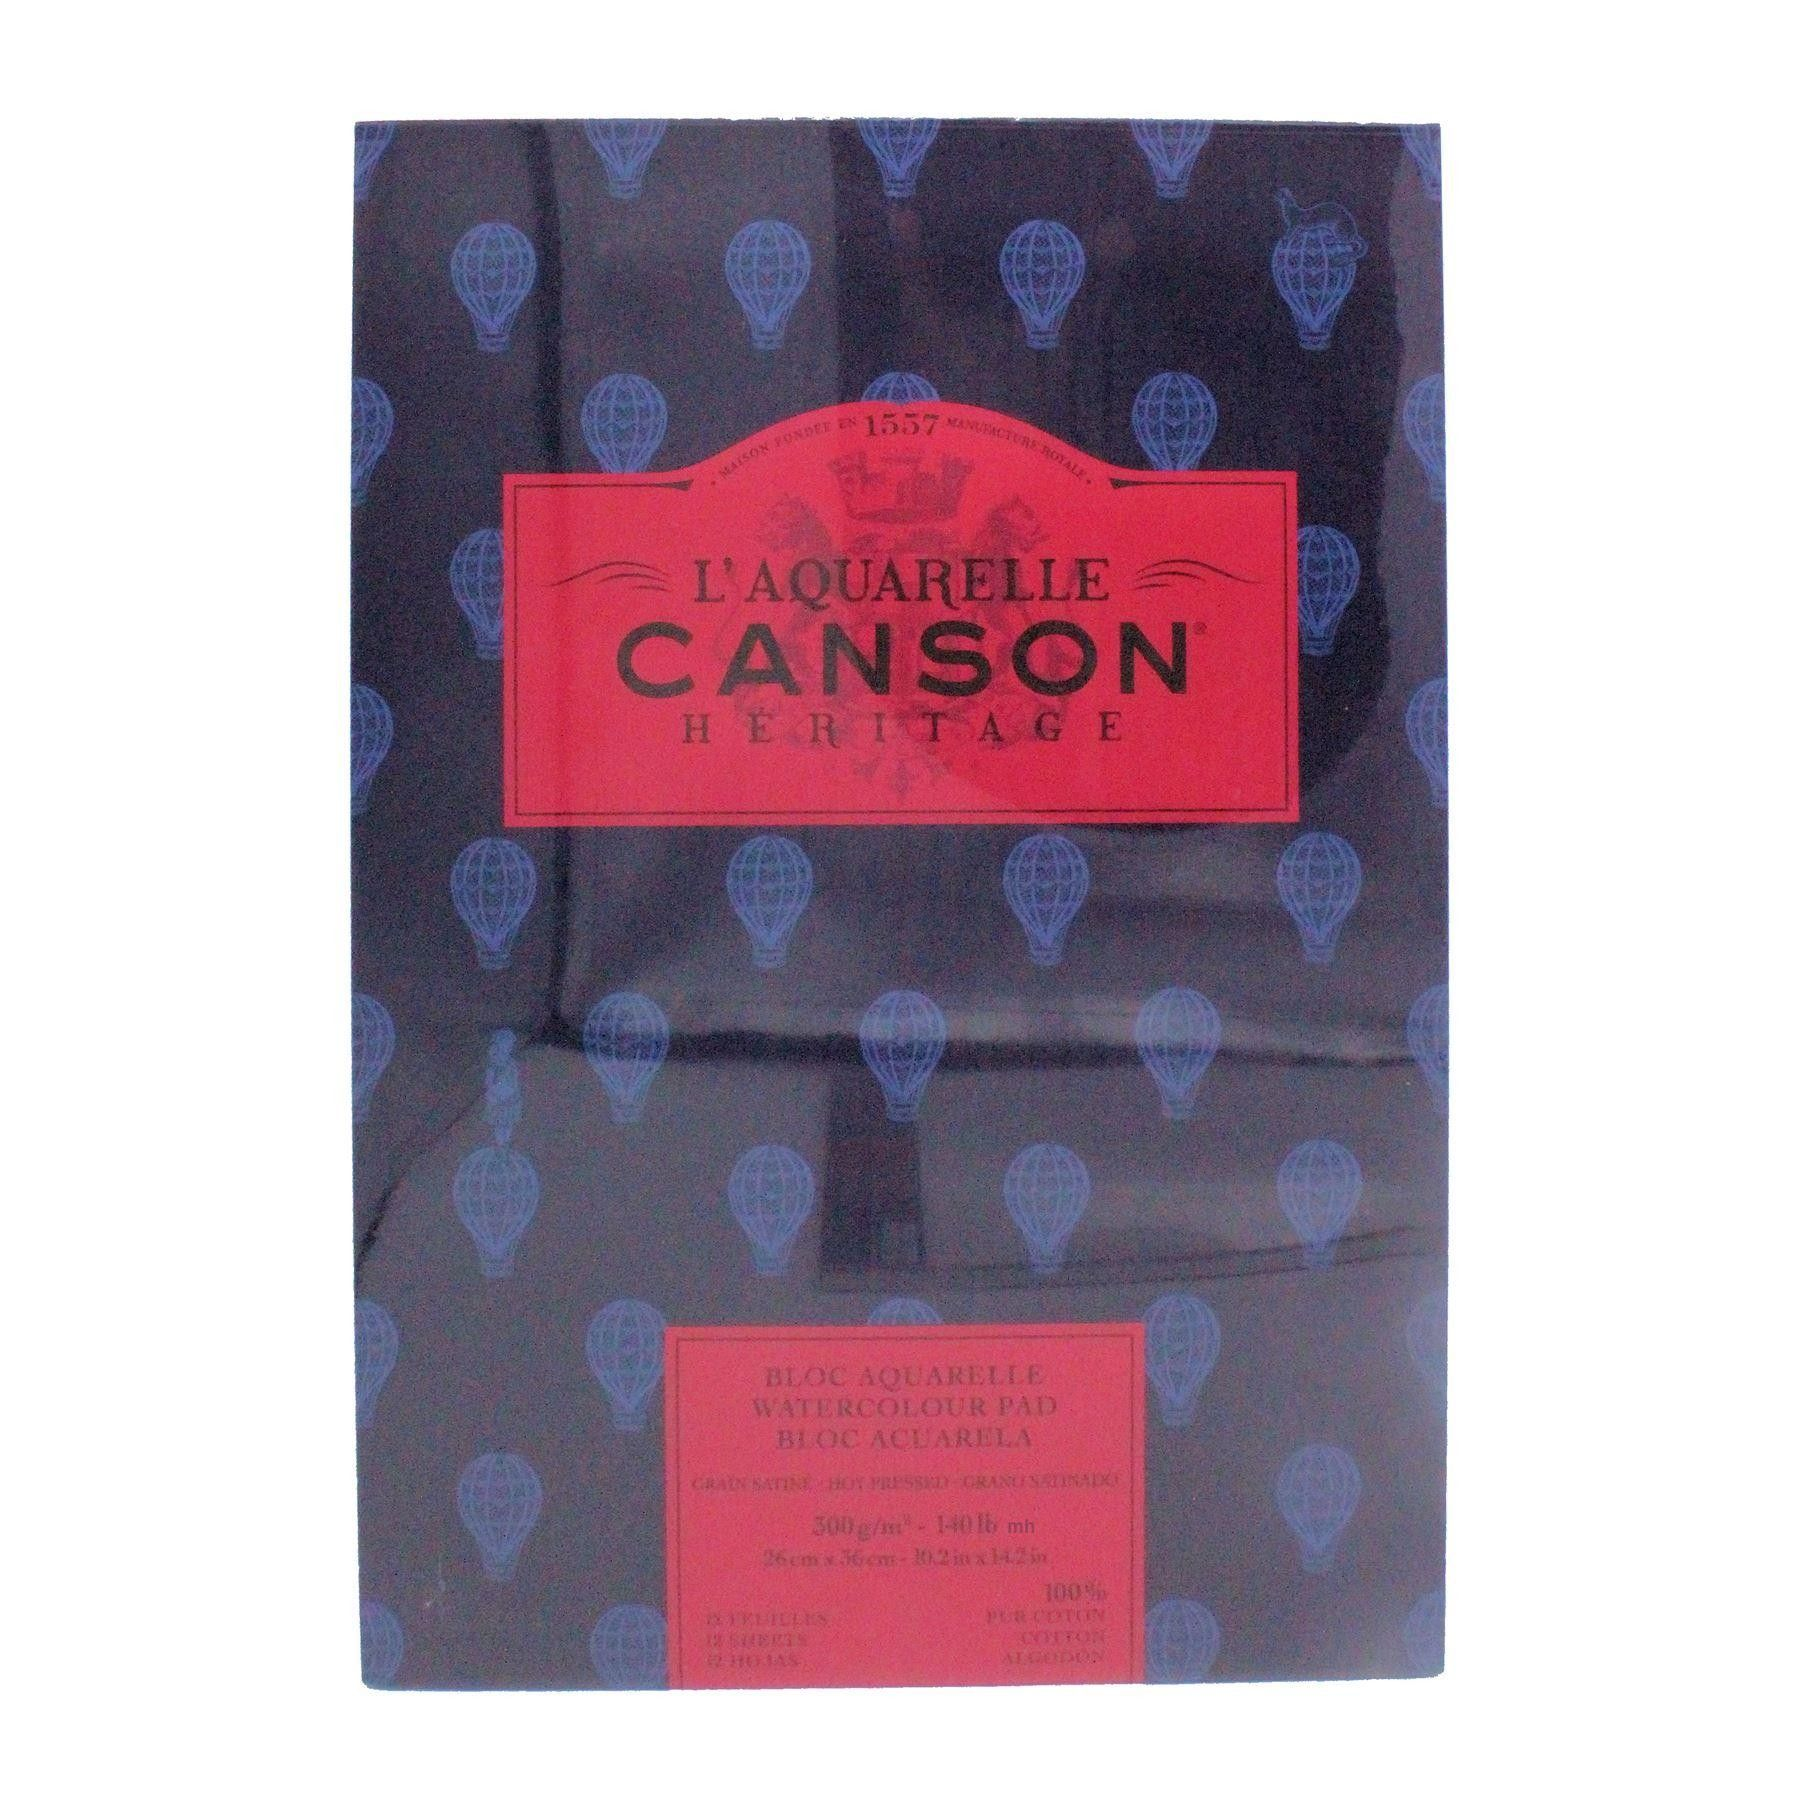 Canson L Aquarelle Heritage Hot Press Pad Glued 300gsm 140lbs